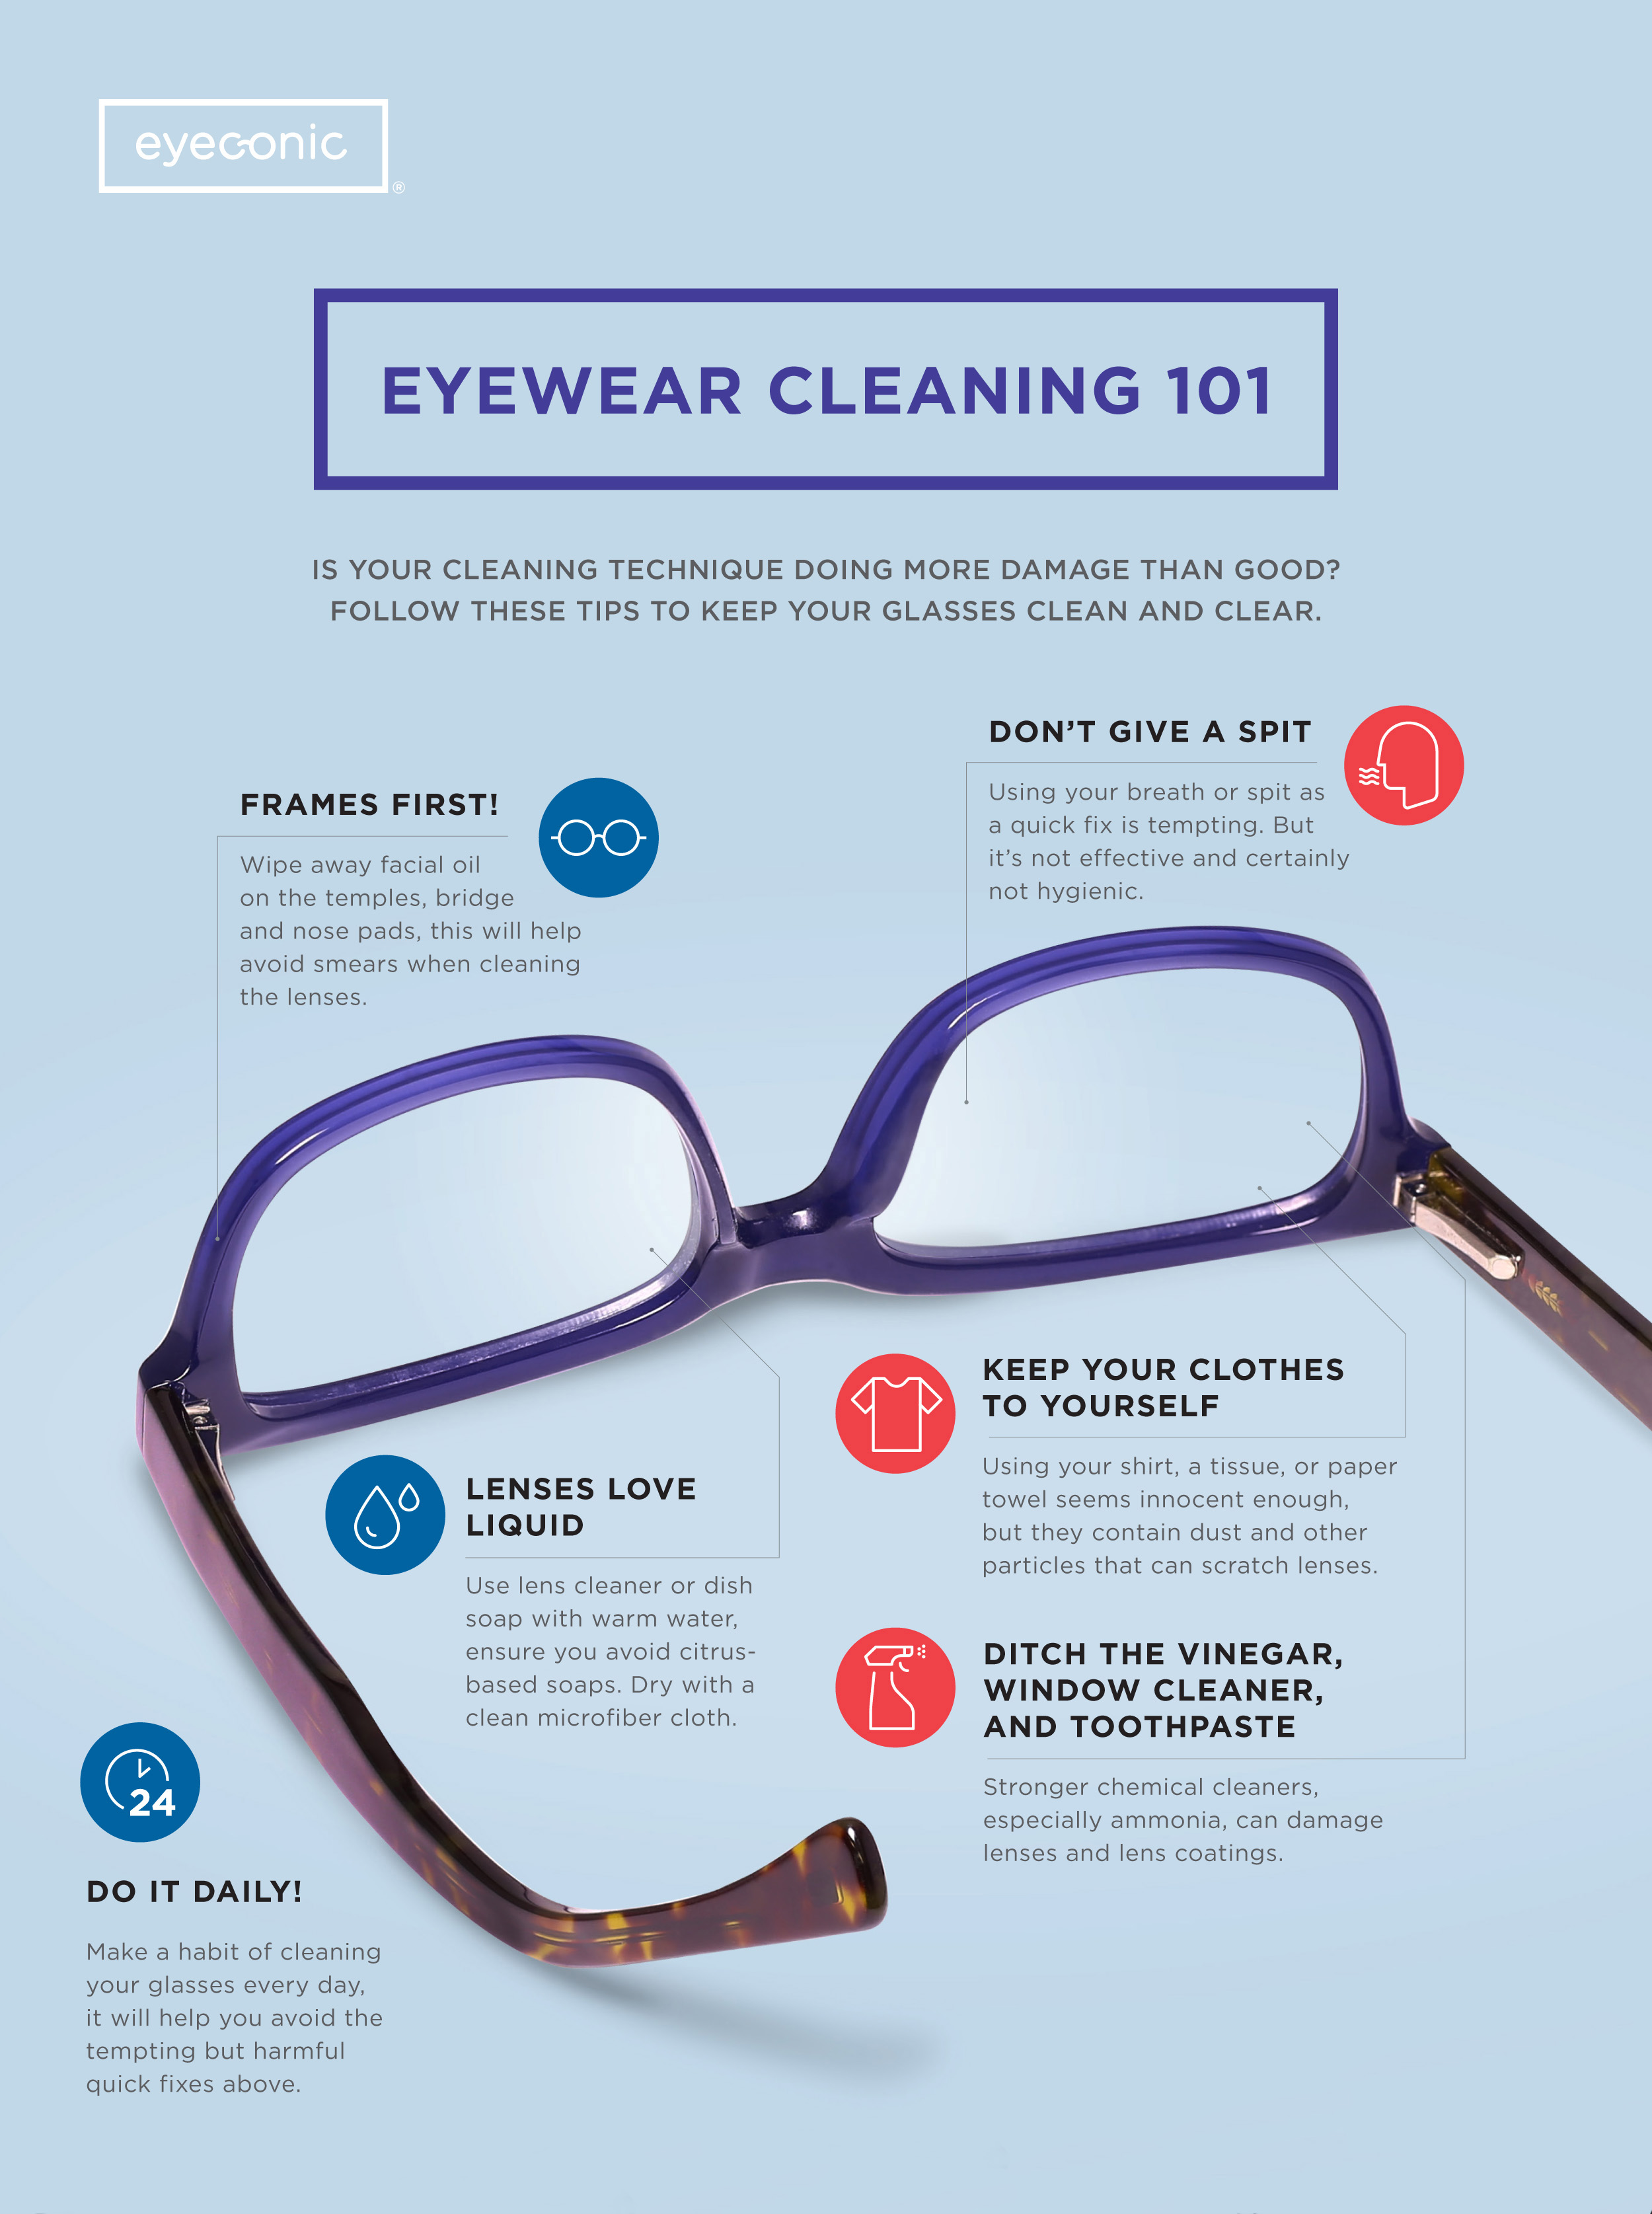 Eyewear cleaning 101